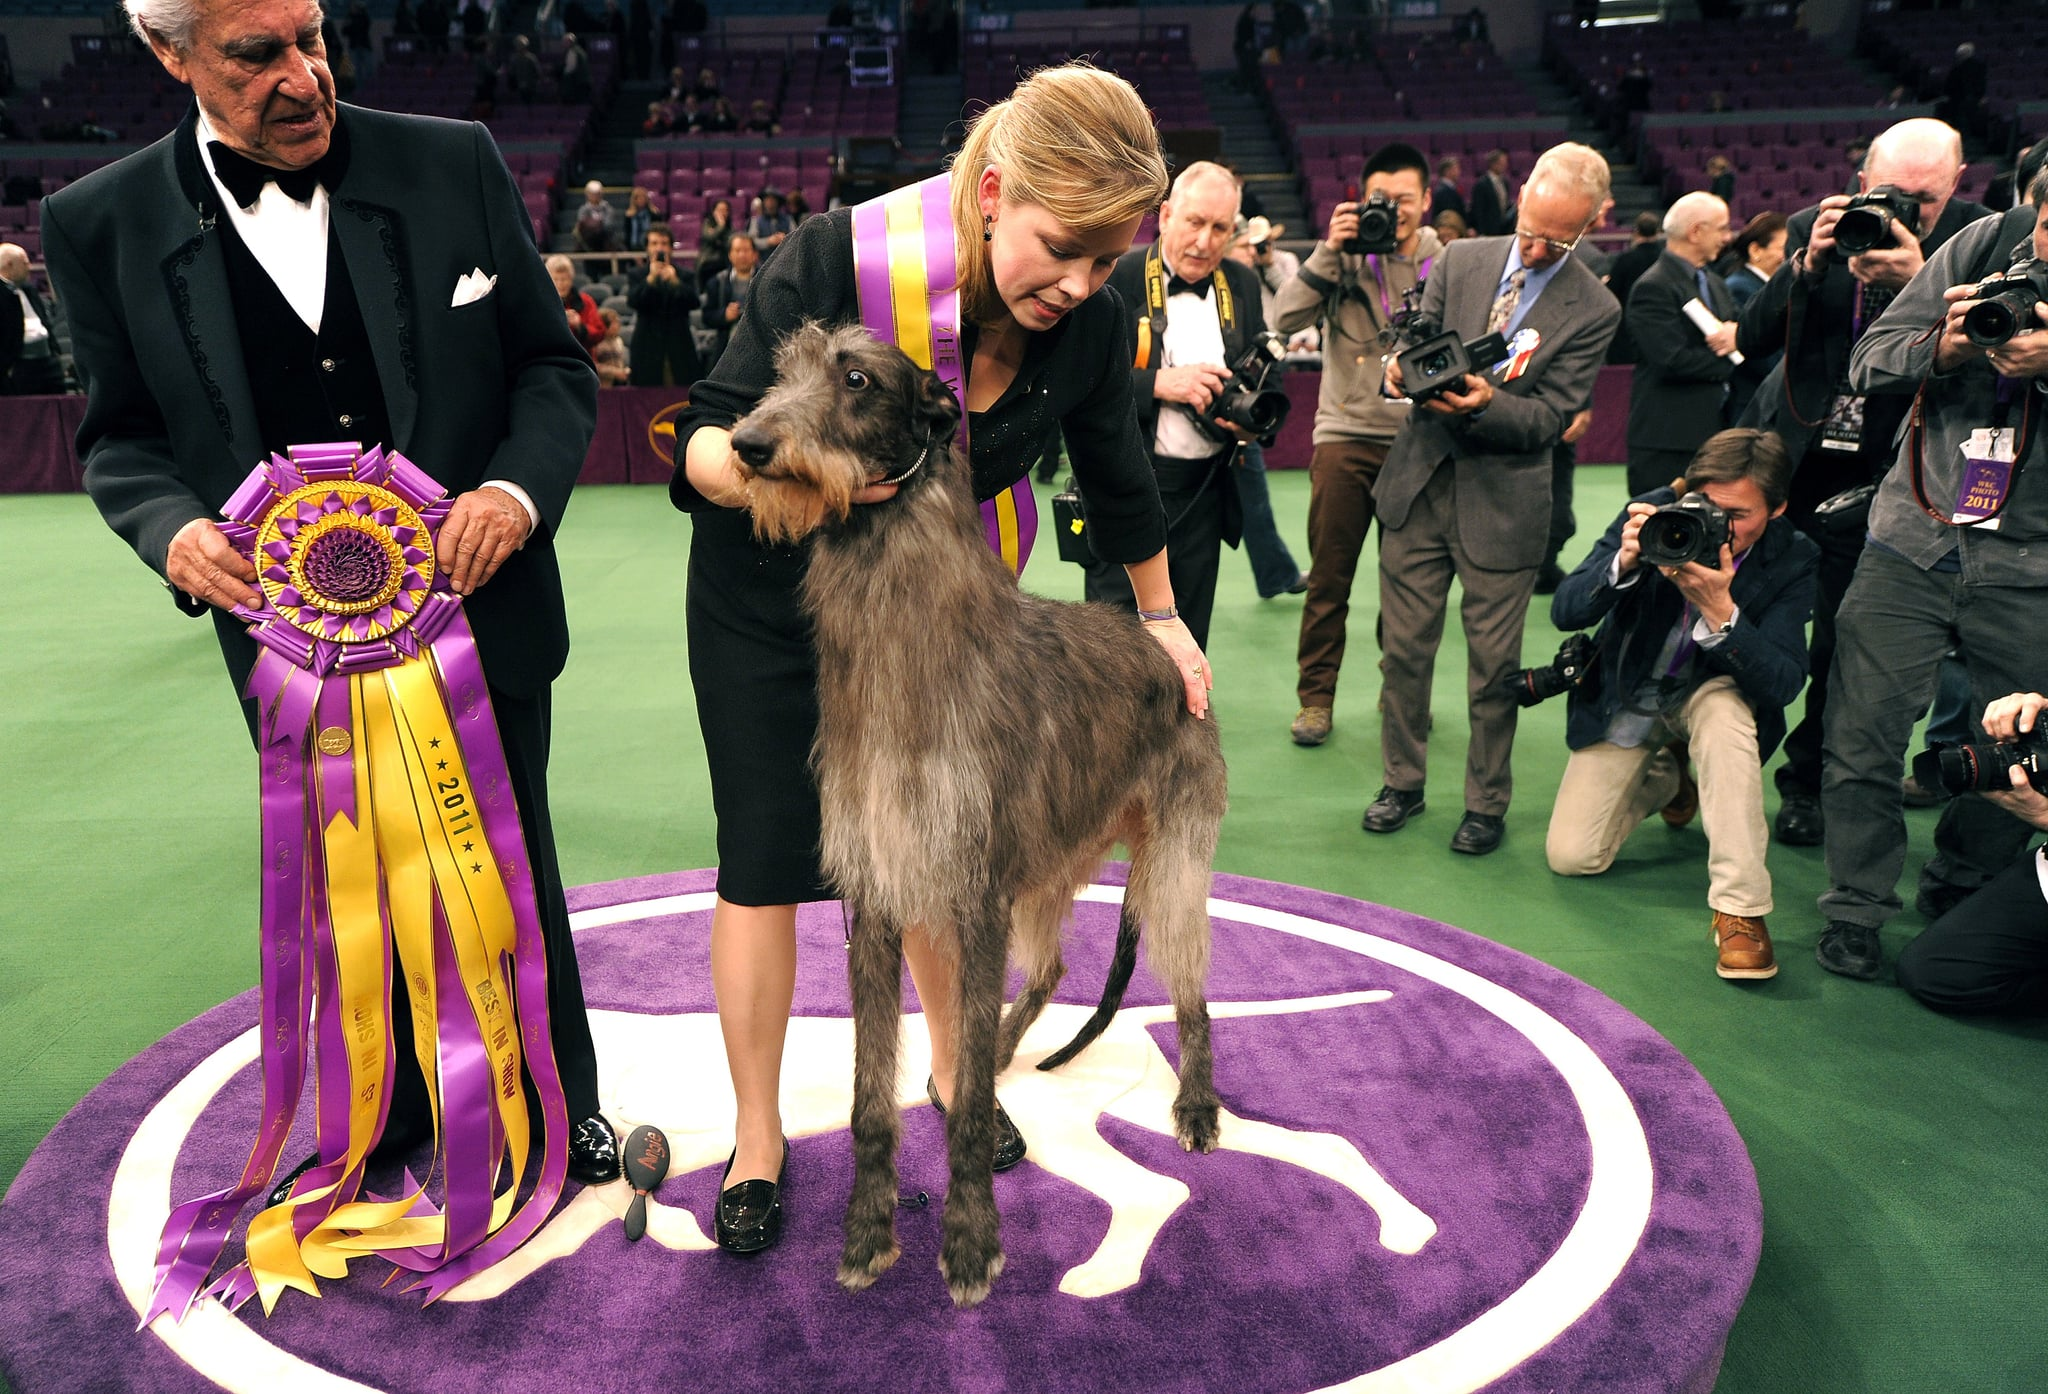 GCH Foxcliffe Hickory Wind, a Scottish deerhound, was 2011's best in show winner.